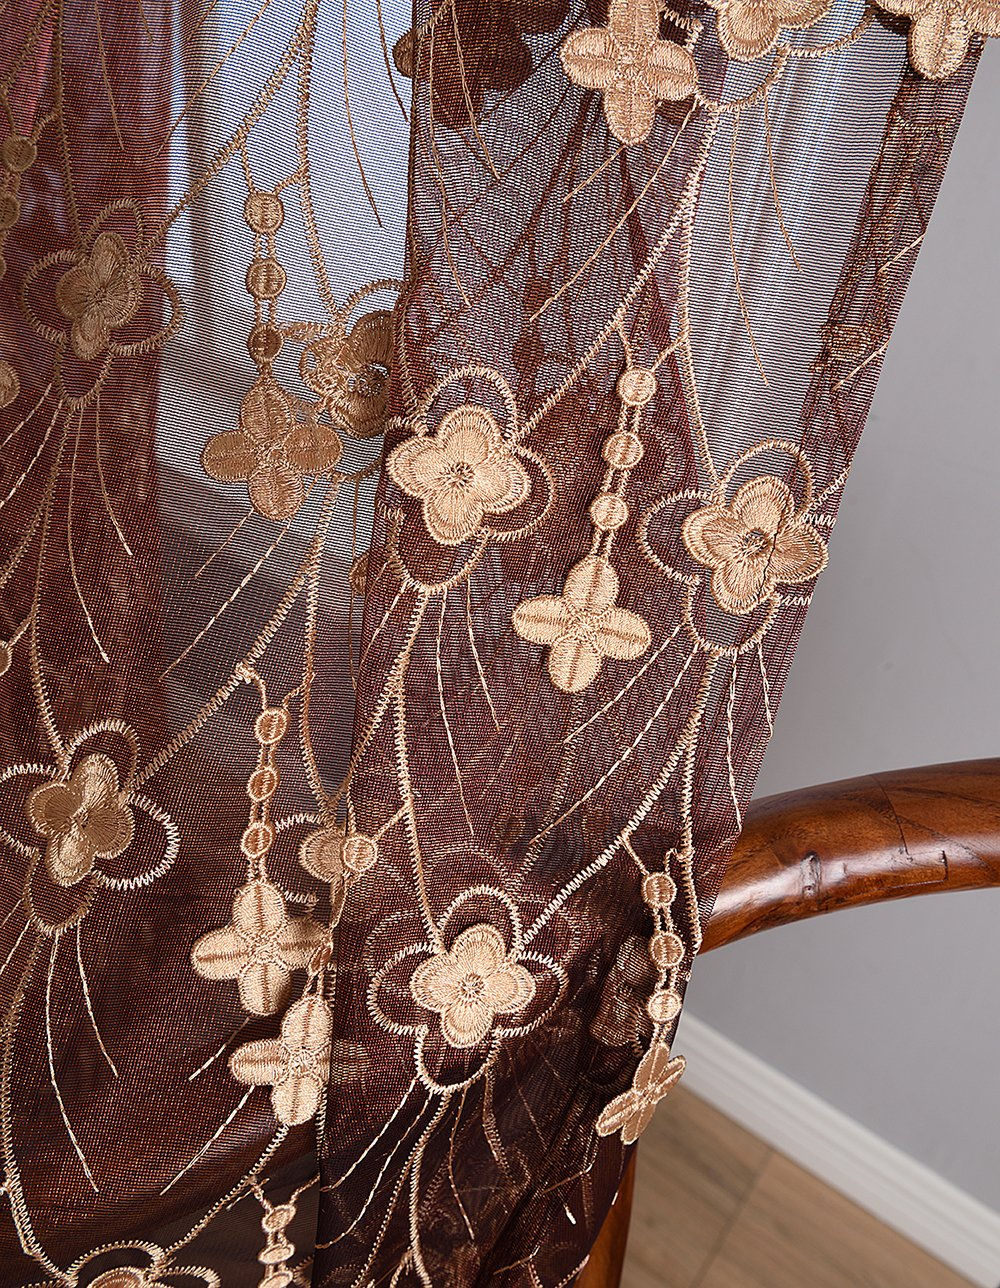 Aside Bside 4 Petals Floral Embroidered Sheer Curtains with Draping Embroidery Decorations Rod Pocket Top Brilliant Design (1 Panel, W 52 x L 104 inch, Red 6) -1281638521048506C1PGC by Aside Bside (Image #5)